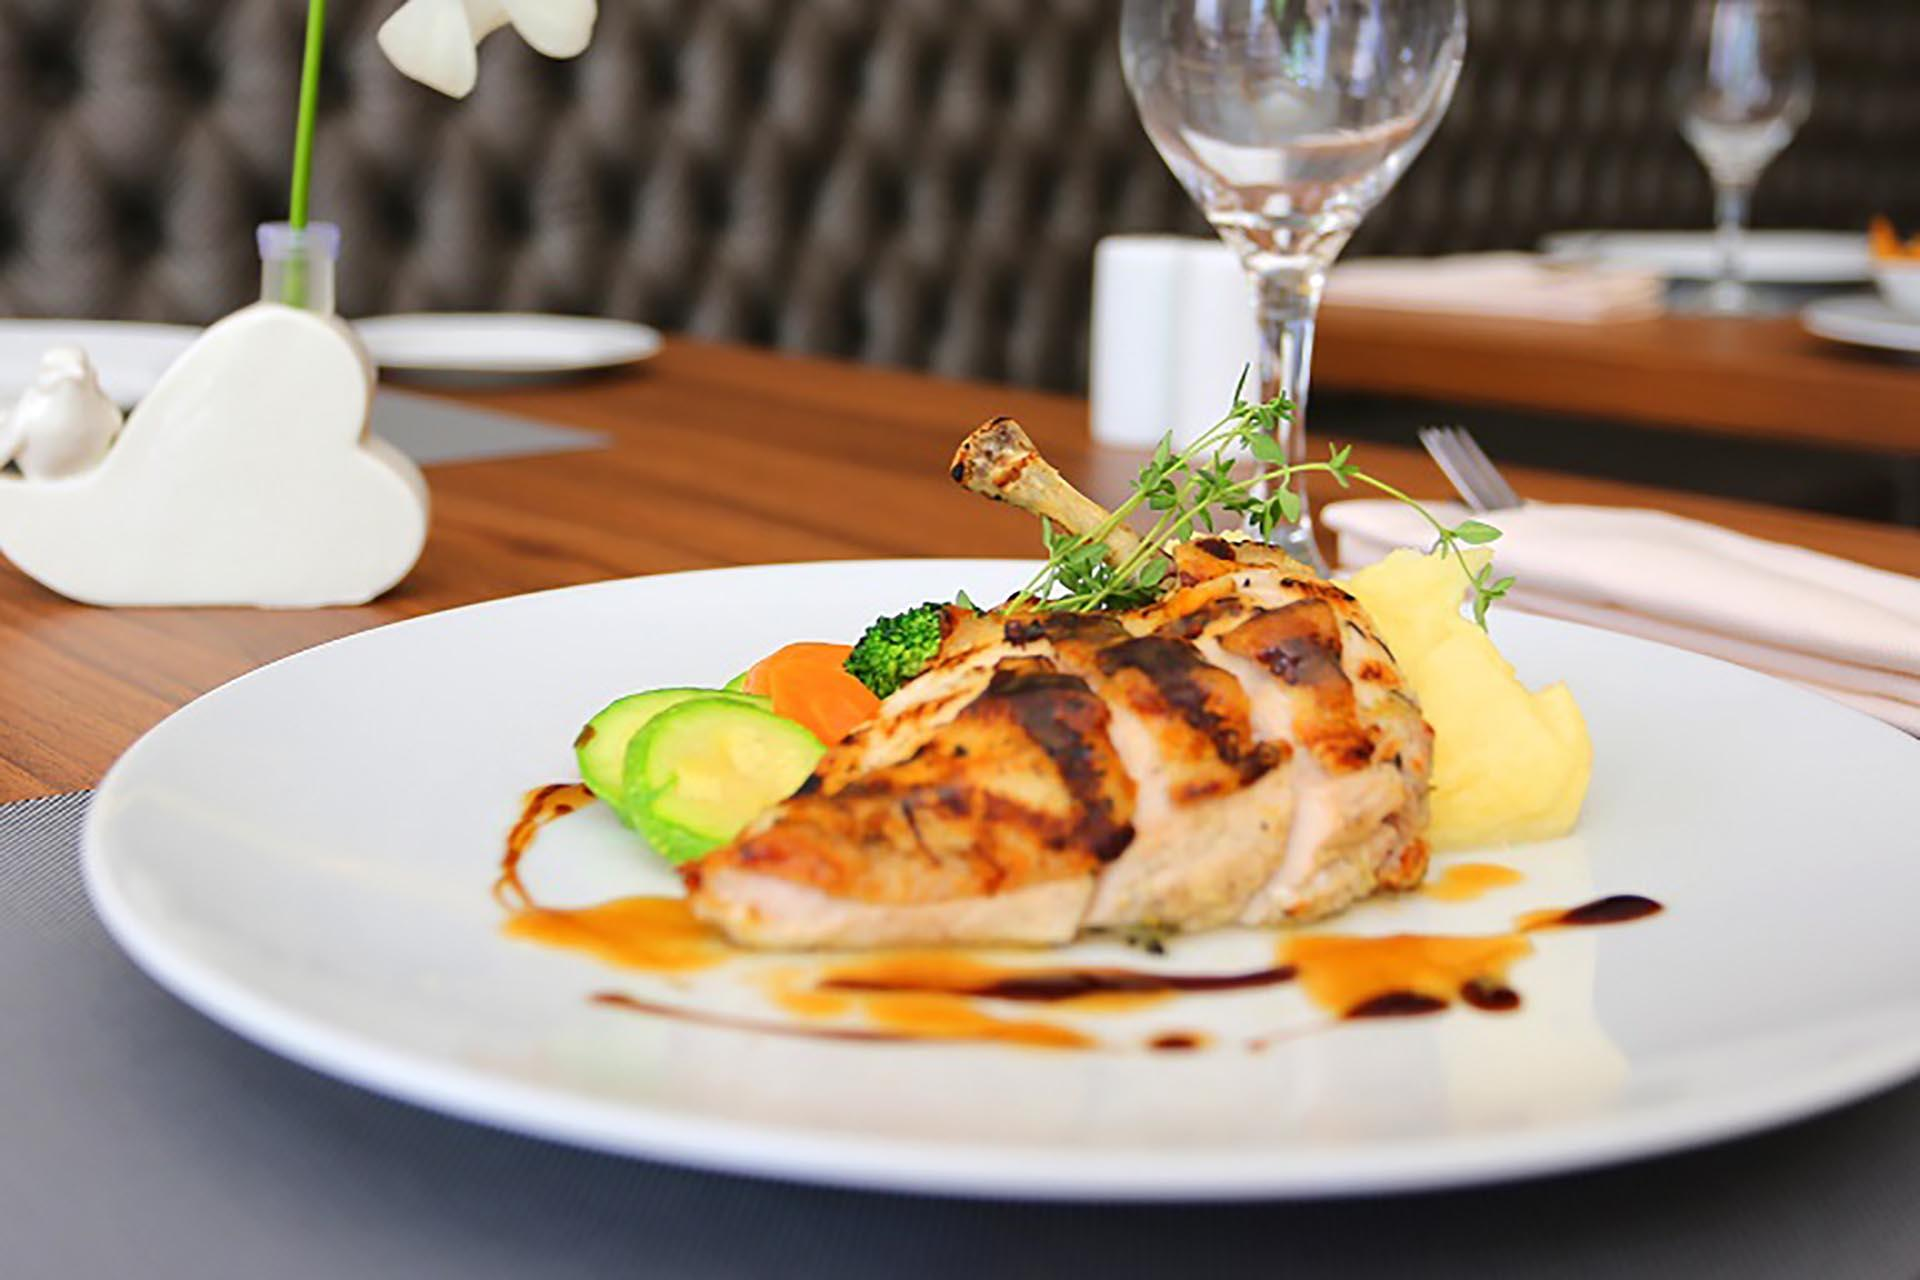 Chicken Dish at Mist Hotel and Spa